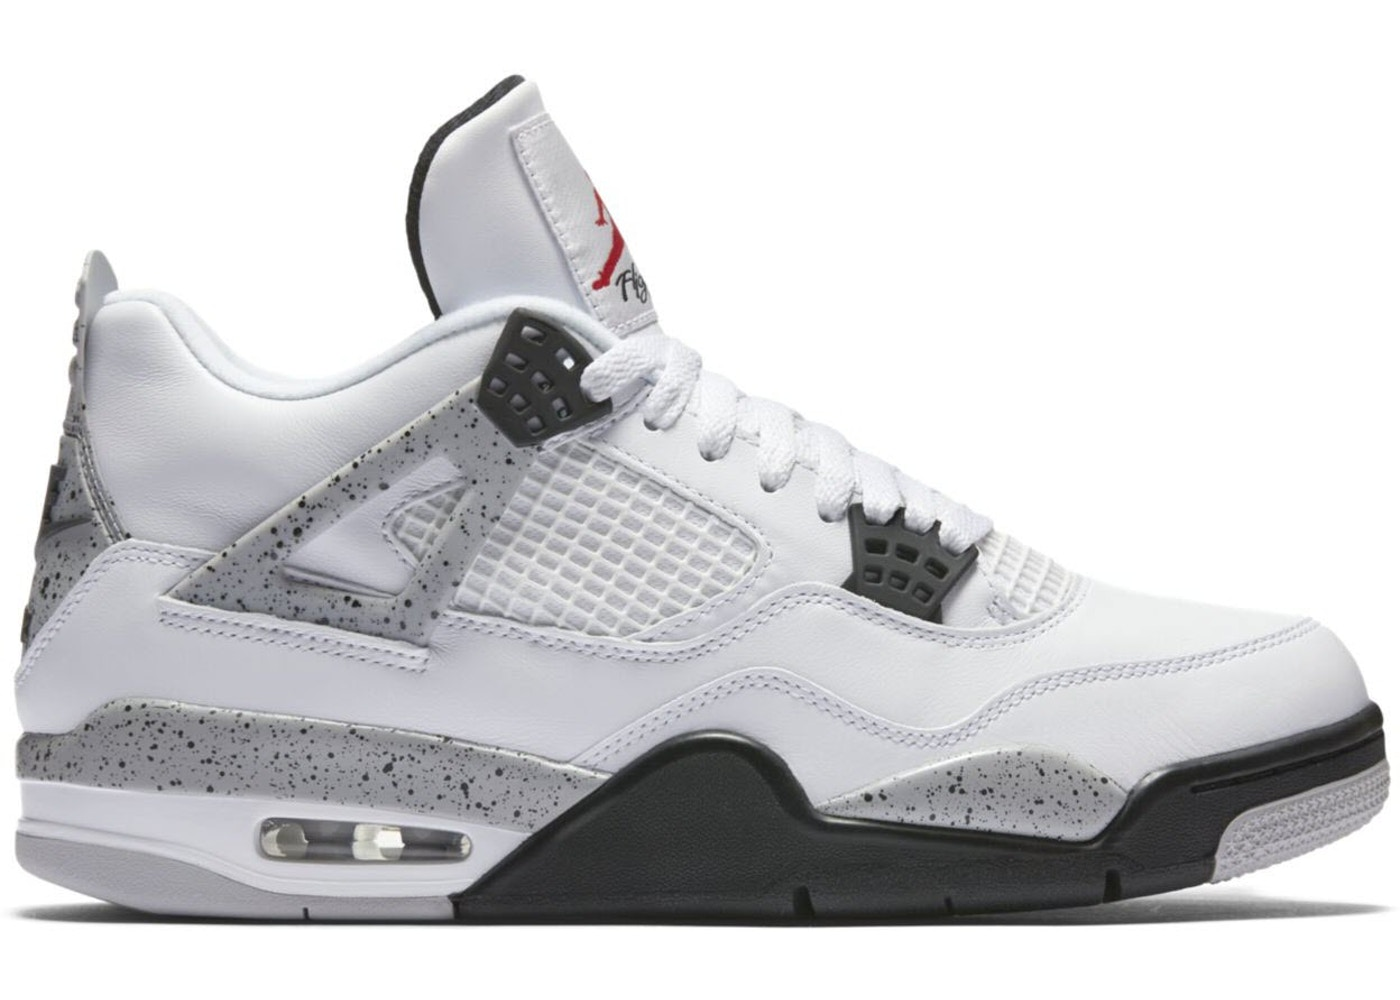 ceb5b8900c4 HypeAnalyzer · Jordan 4 Retro White Cement (2016)